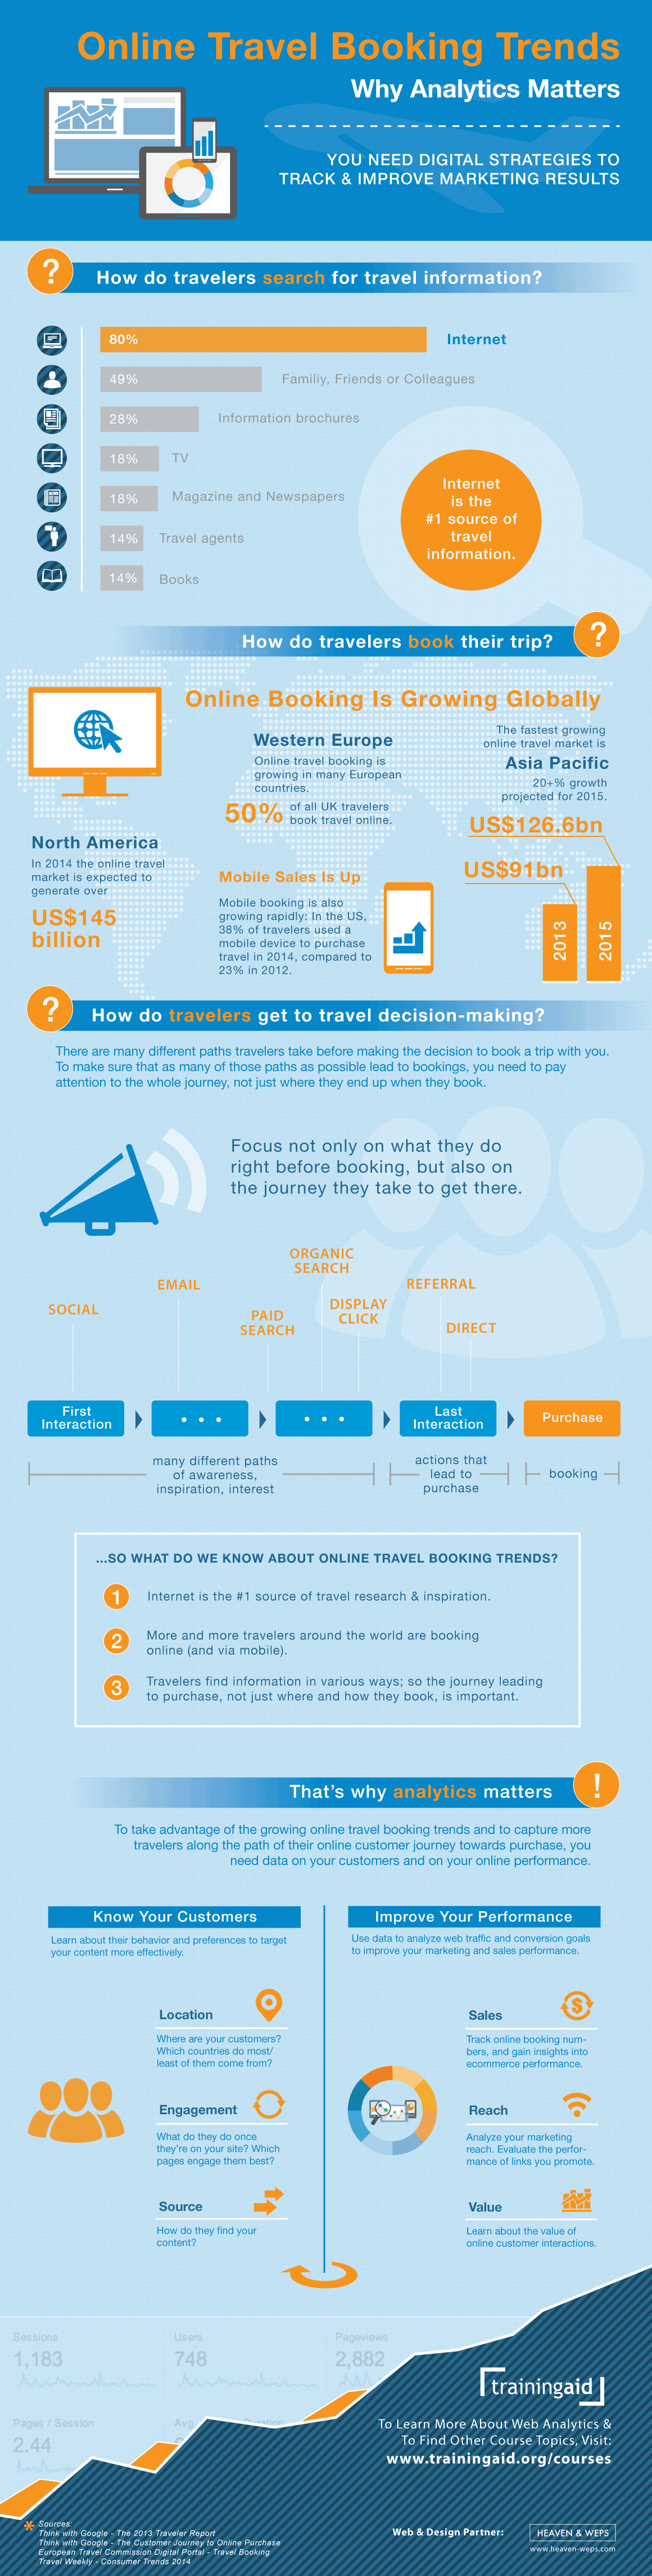 Online Travel Booking Trends and Web Analytics